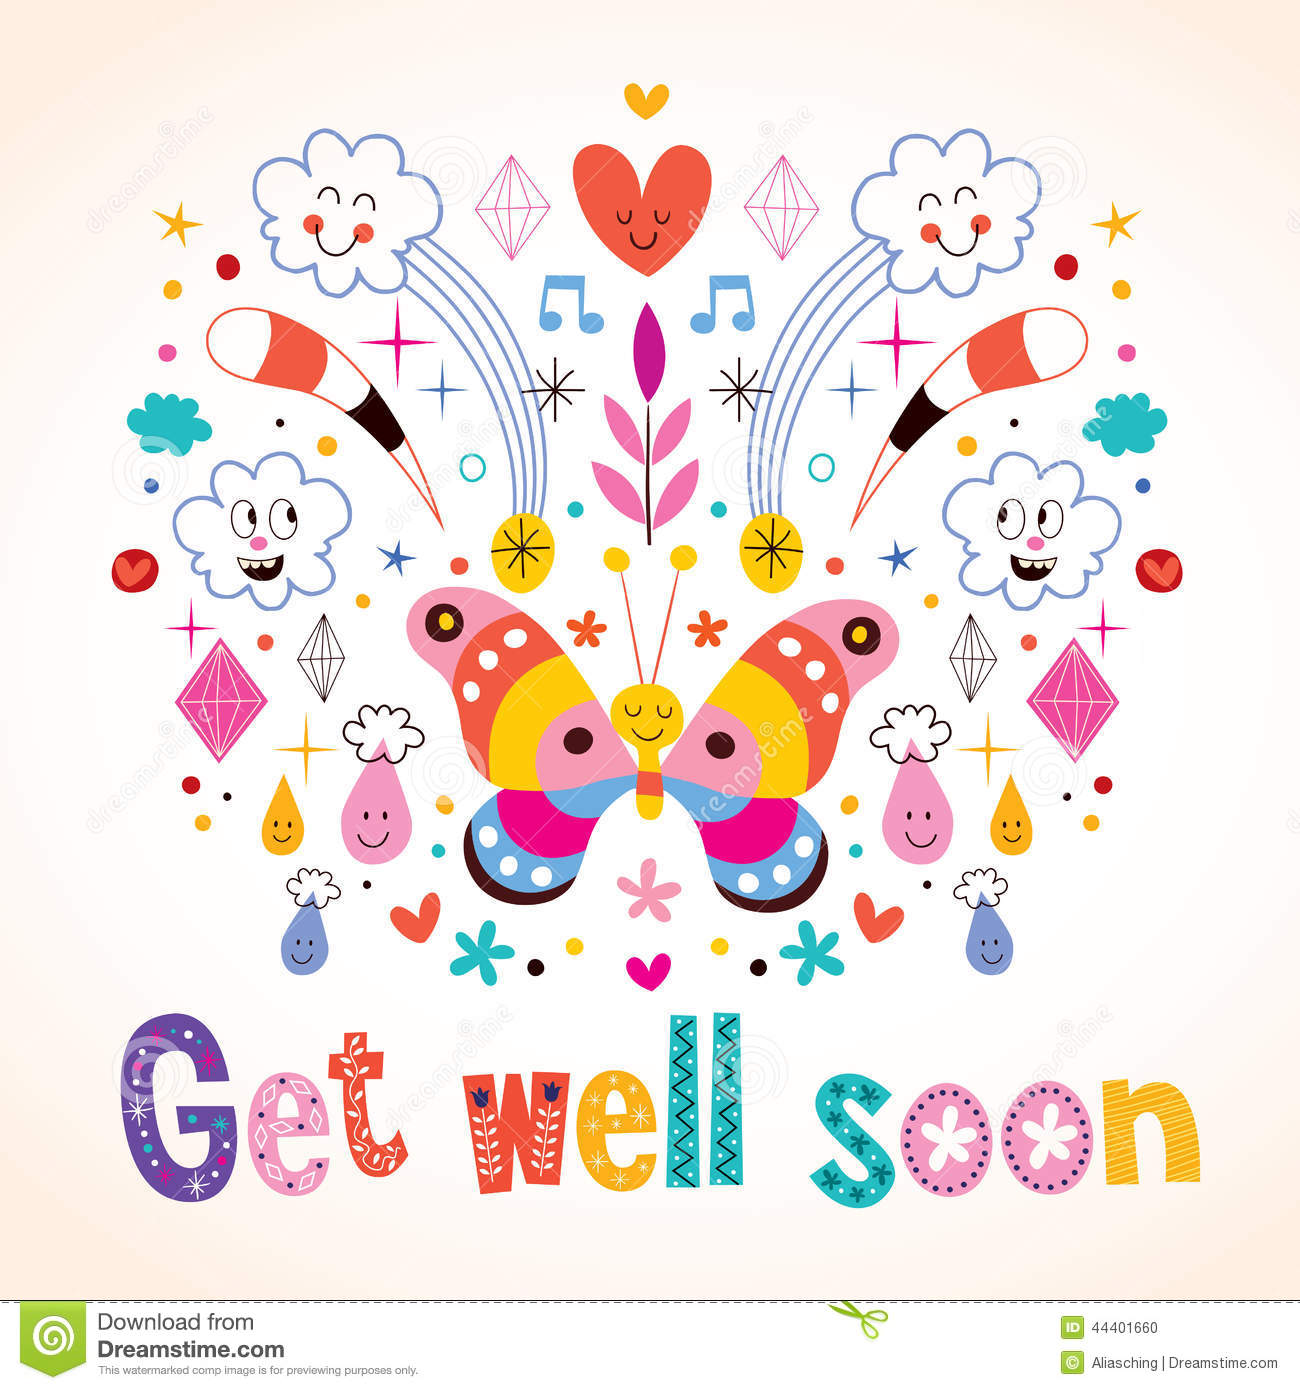 Get Well Soon Greeting Card Stock Vector - Image: 44401660